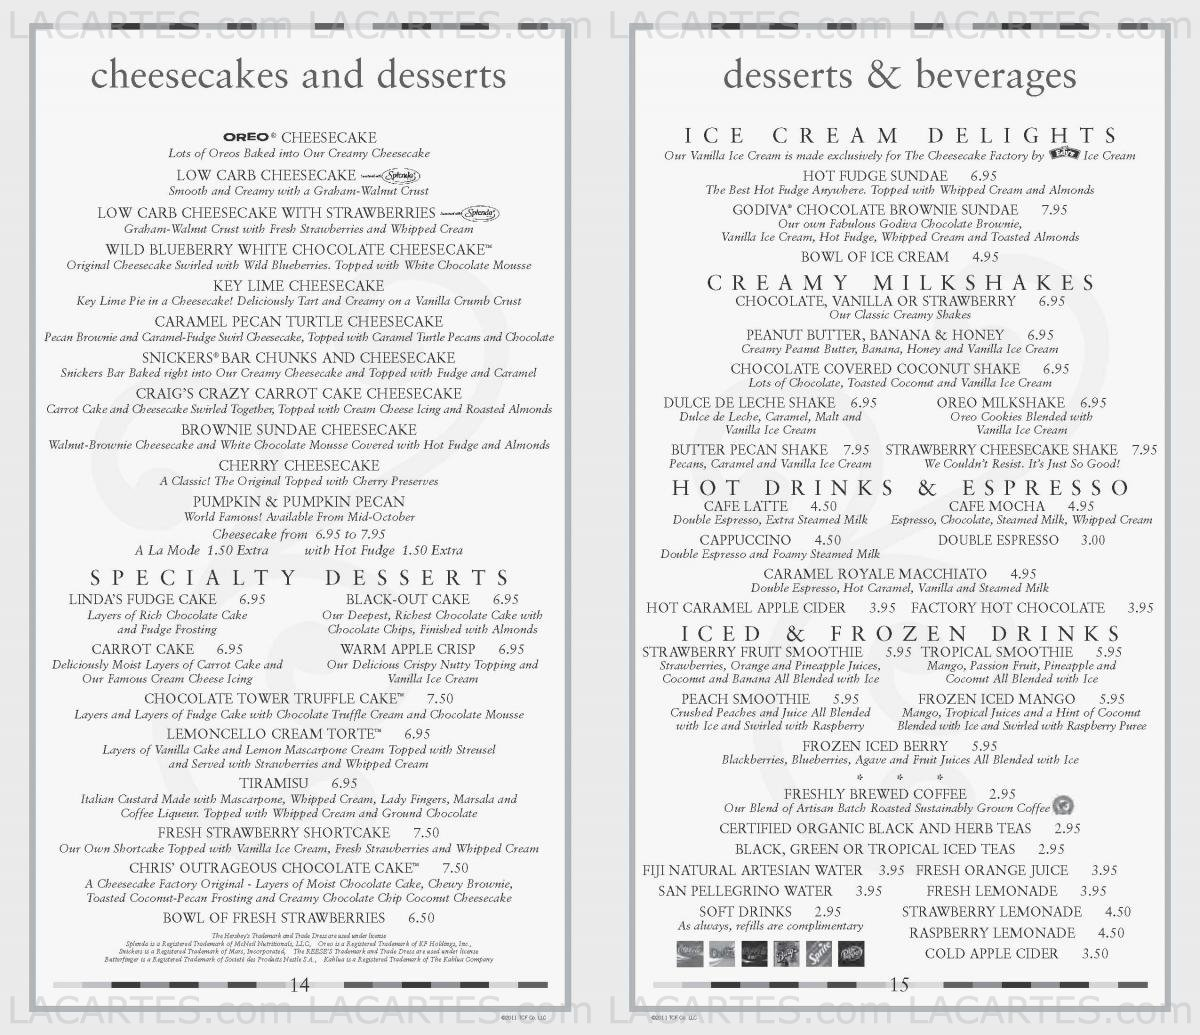 cheesecake factory application form - 28 images - cheesecake factory ...